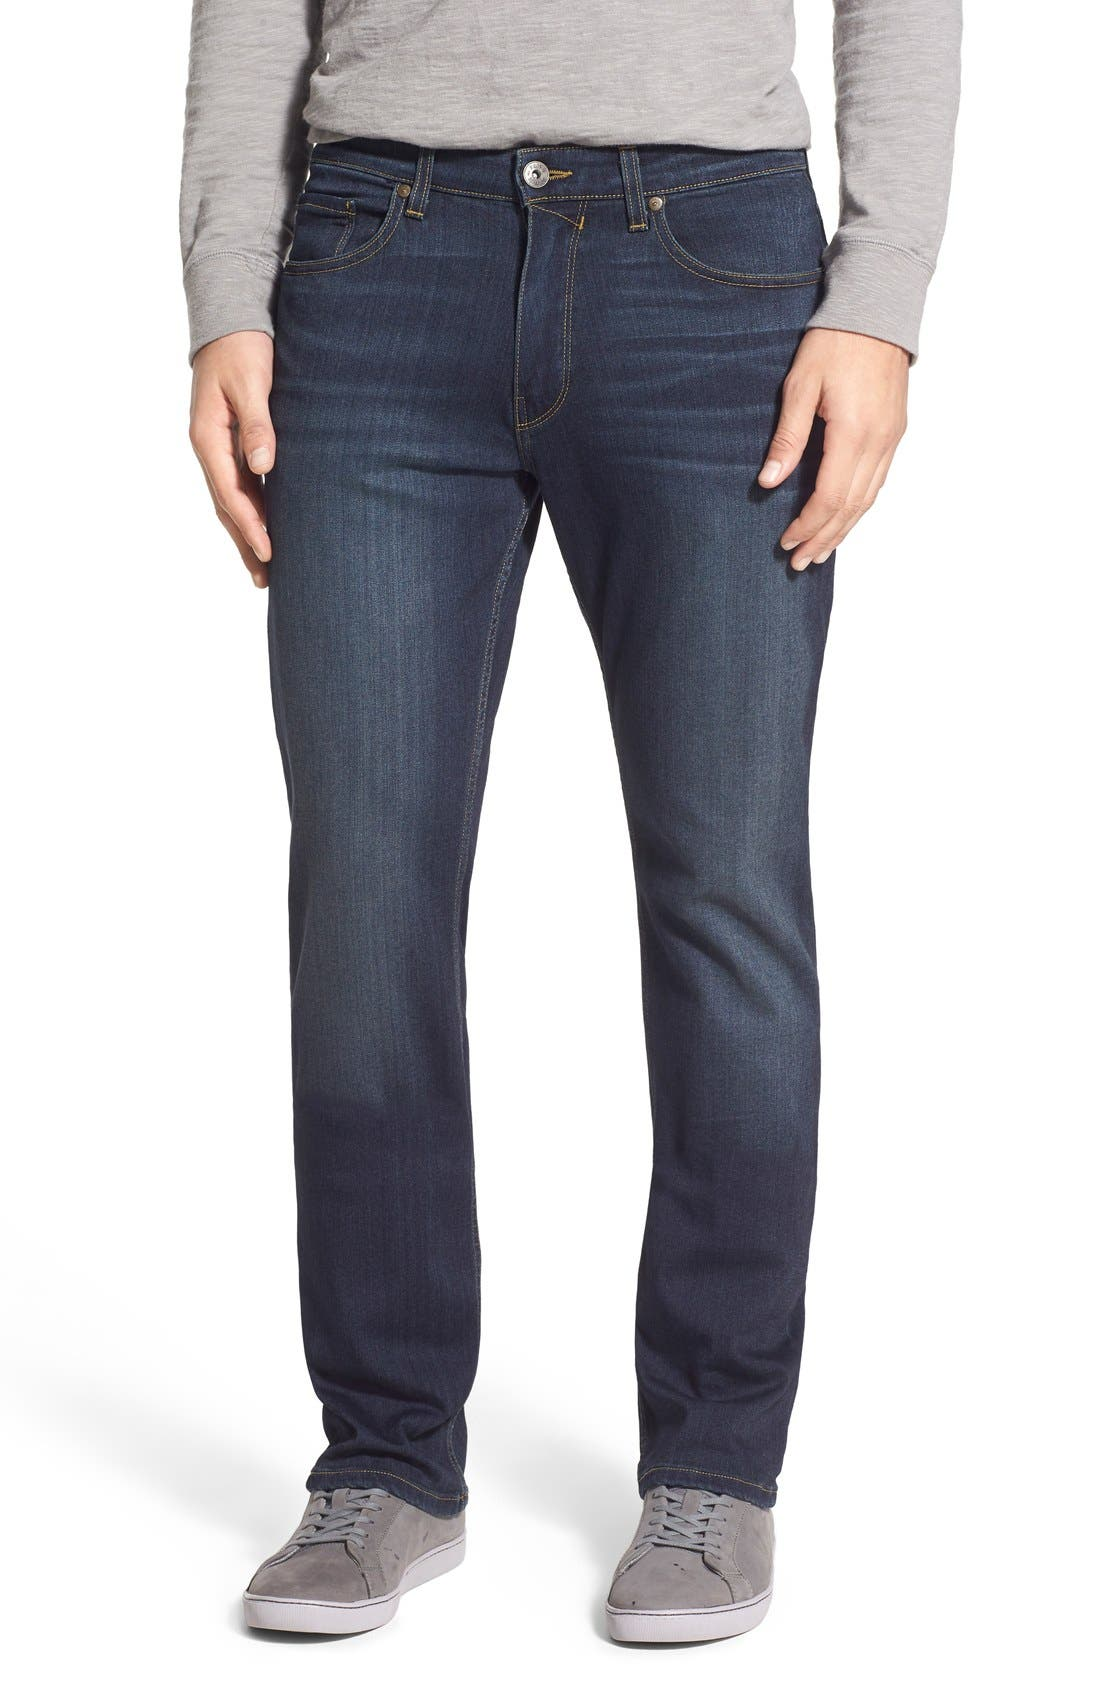 'Normandie' Straight Leg Jeans,                             Main thumbnail 1, color,                             Rigby